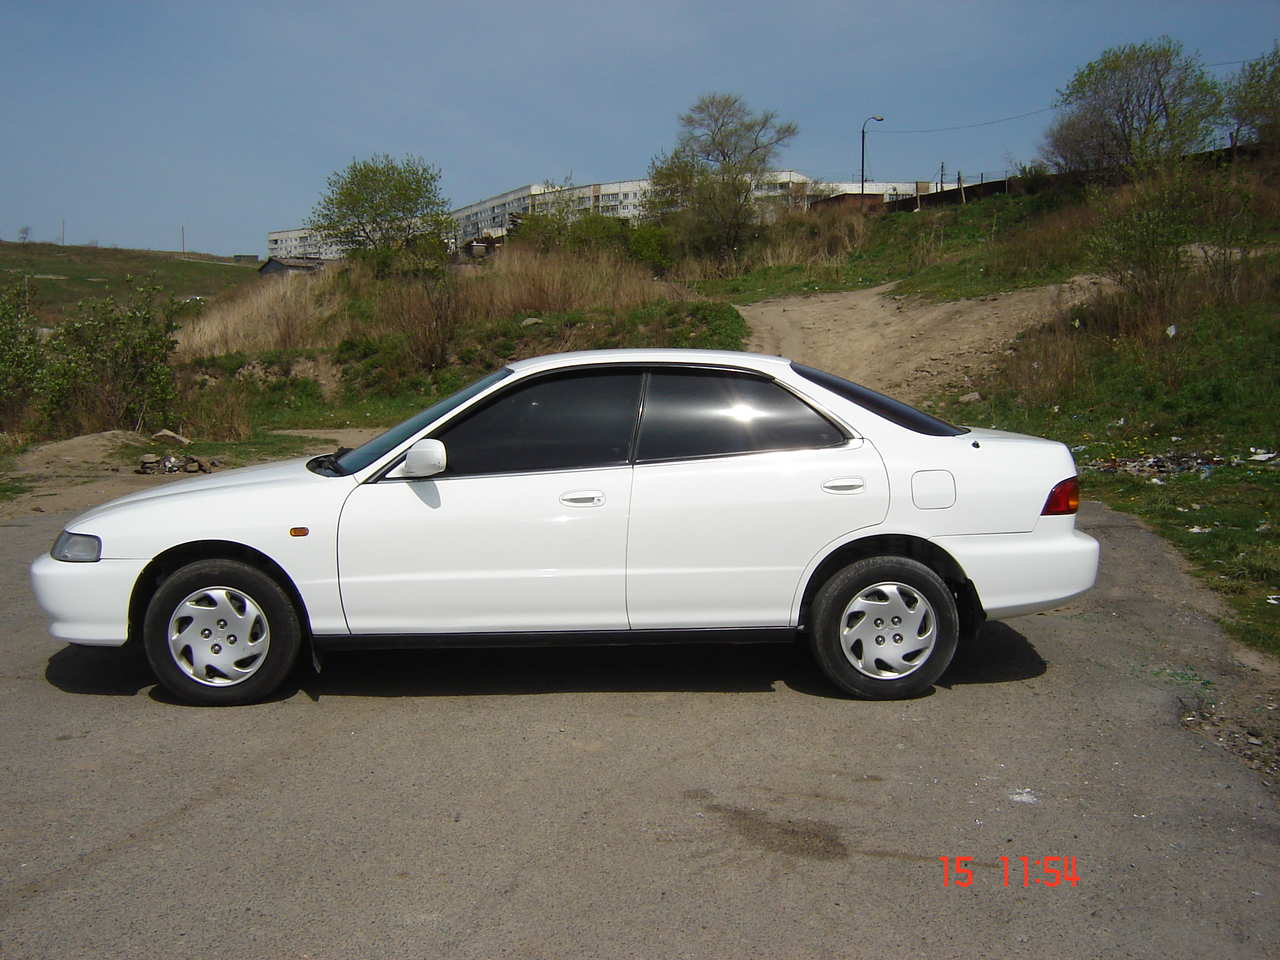 1999 honda integra photos 1 6 gasoline automatic for sale. Black Bedroom Furniture Sets. Home Design Ideas